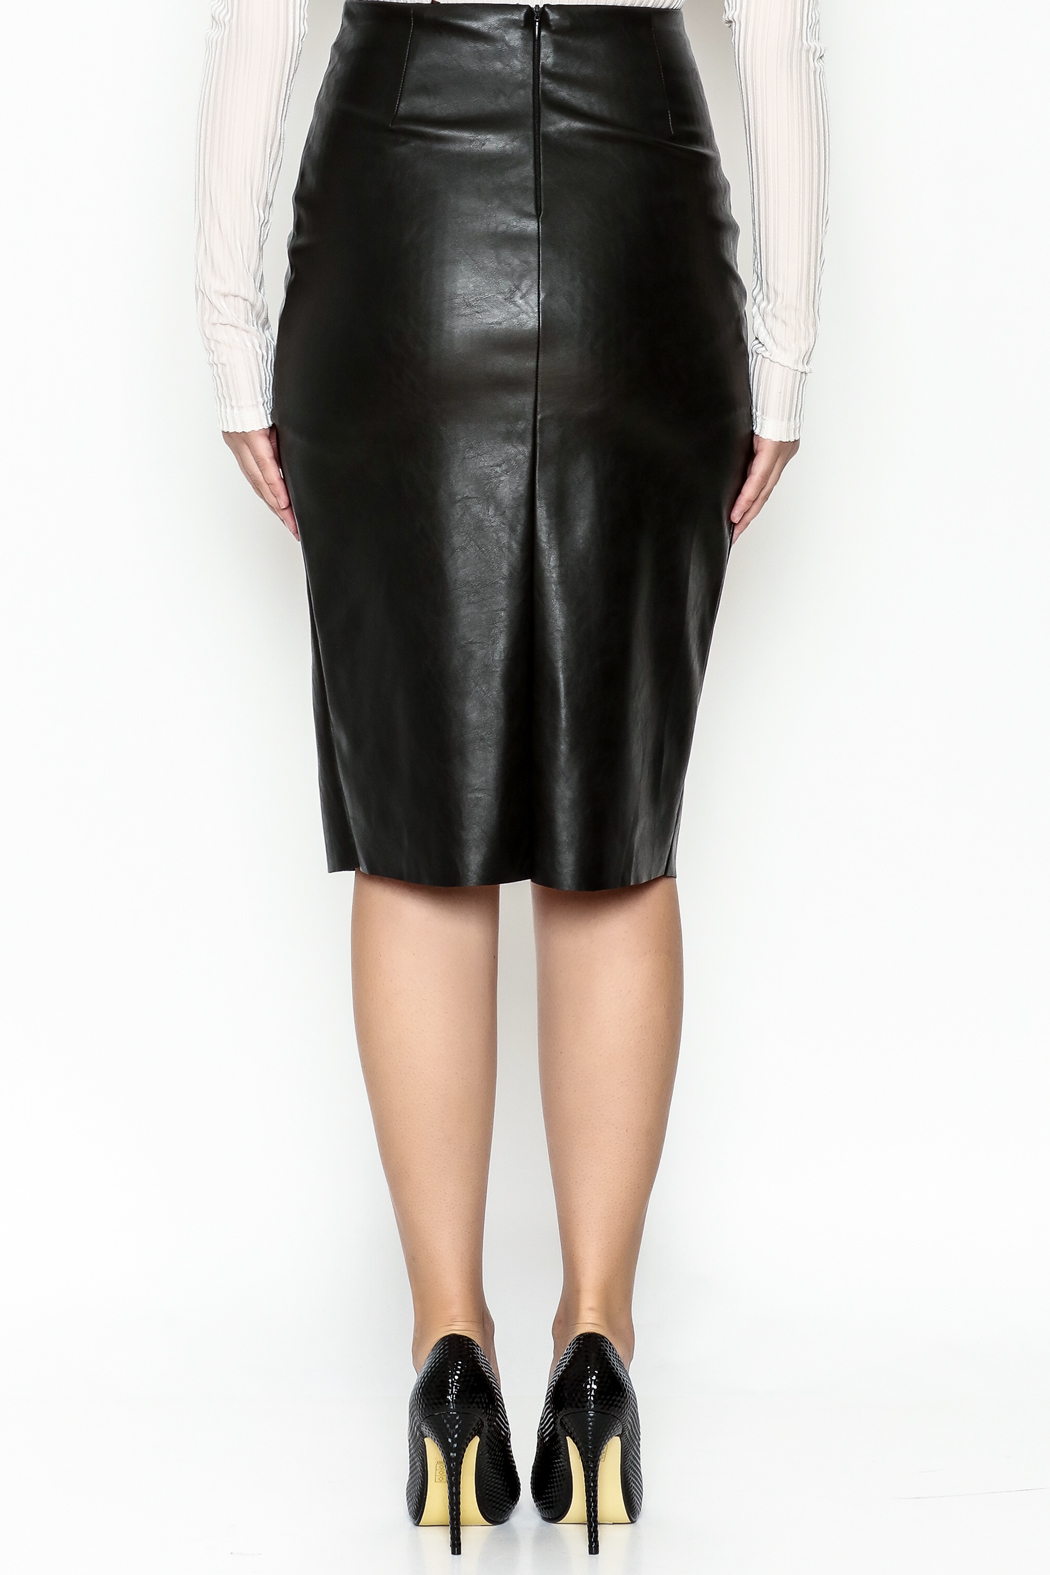 Do & Be Faux Leather Skirt - Back Cropped Image